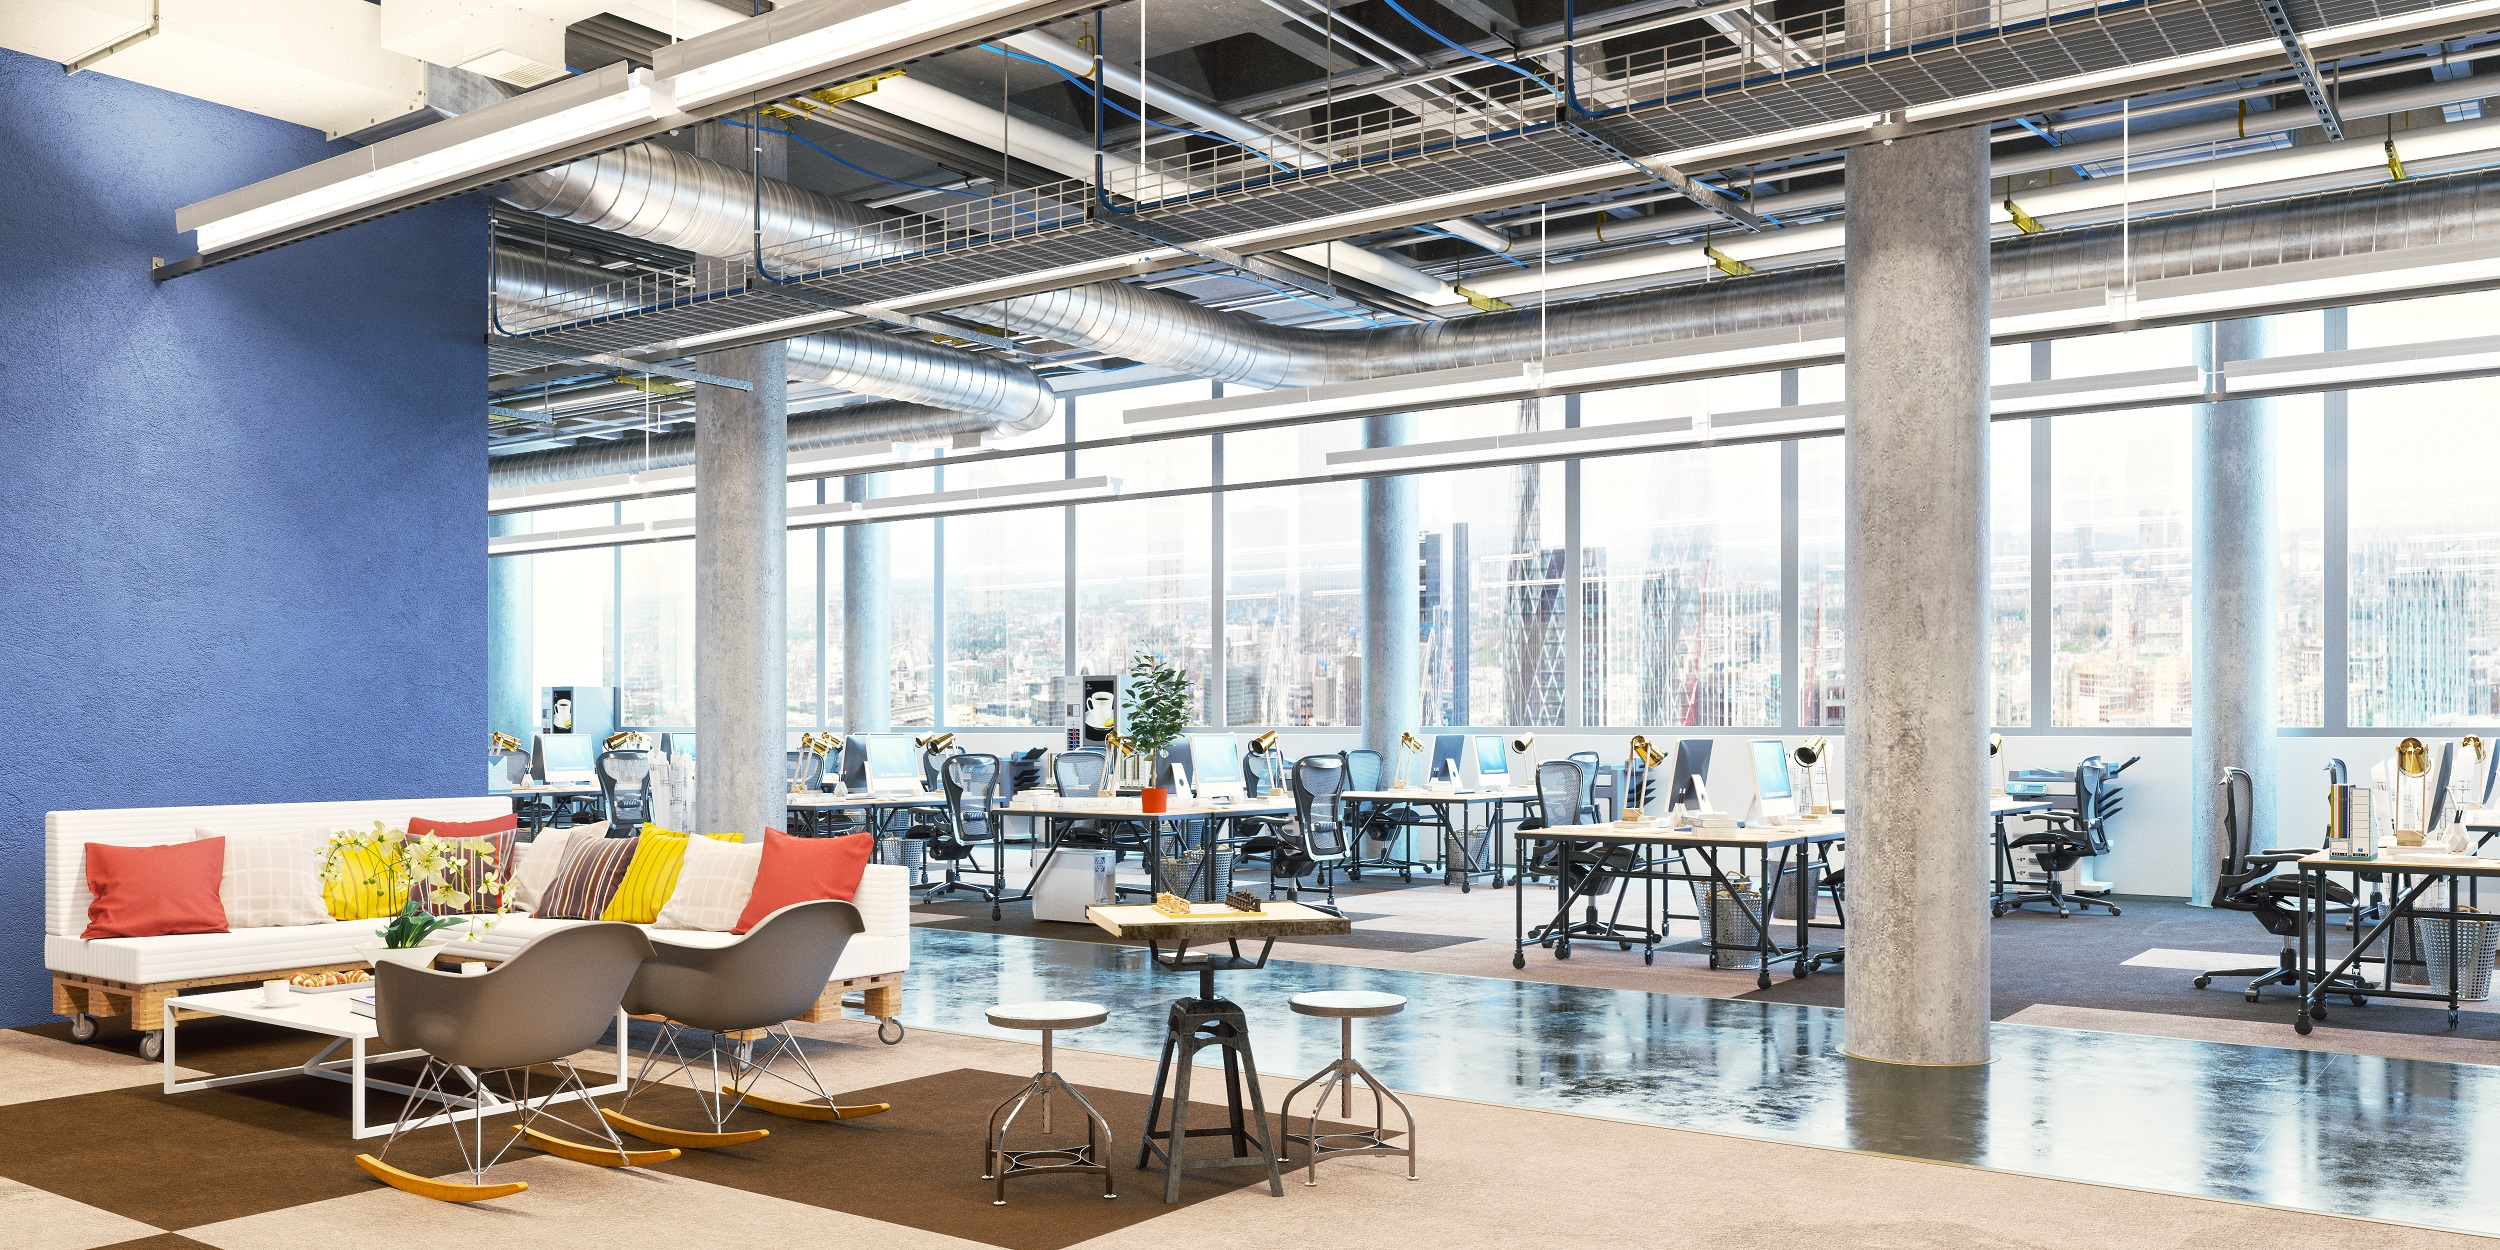 If You Guessed That They All Incorporate Open Office Space Into Their  Design, Youu0027d Be Correct. Open Office Layouts Continue To Gain Popularity  As Many ...